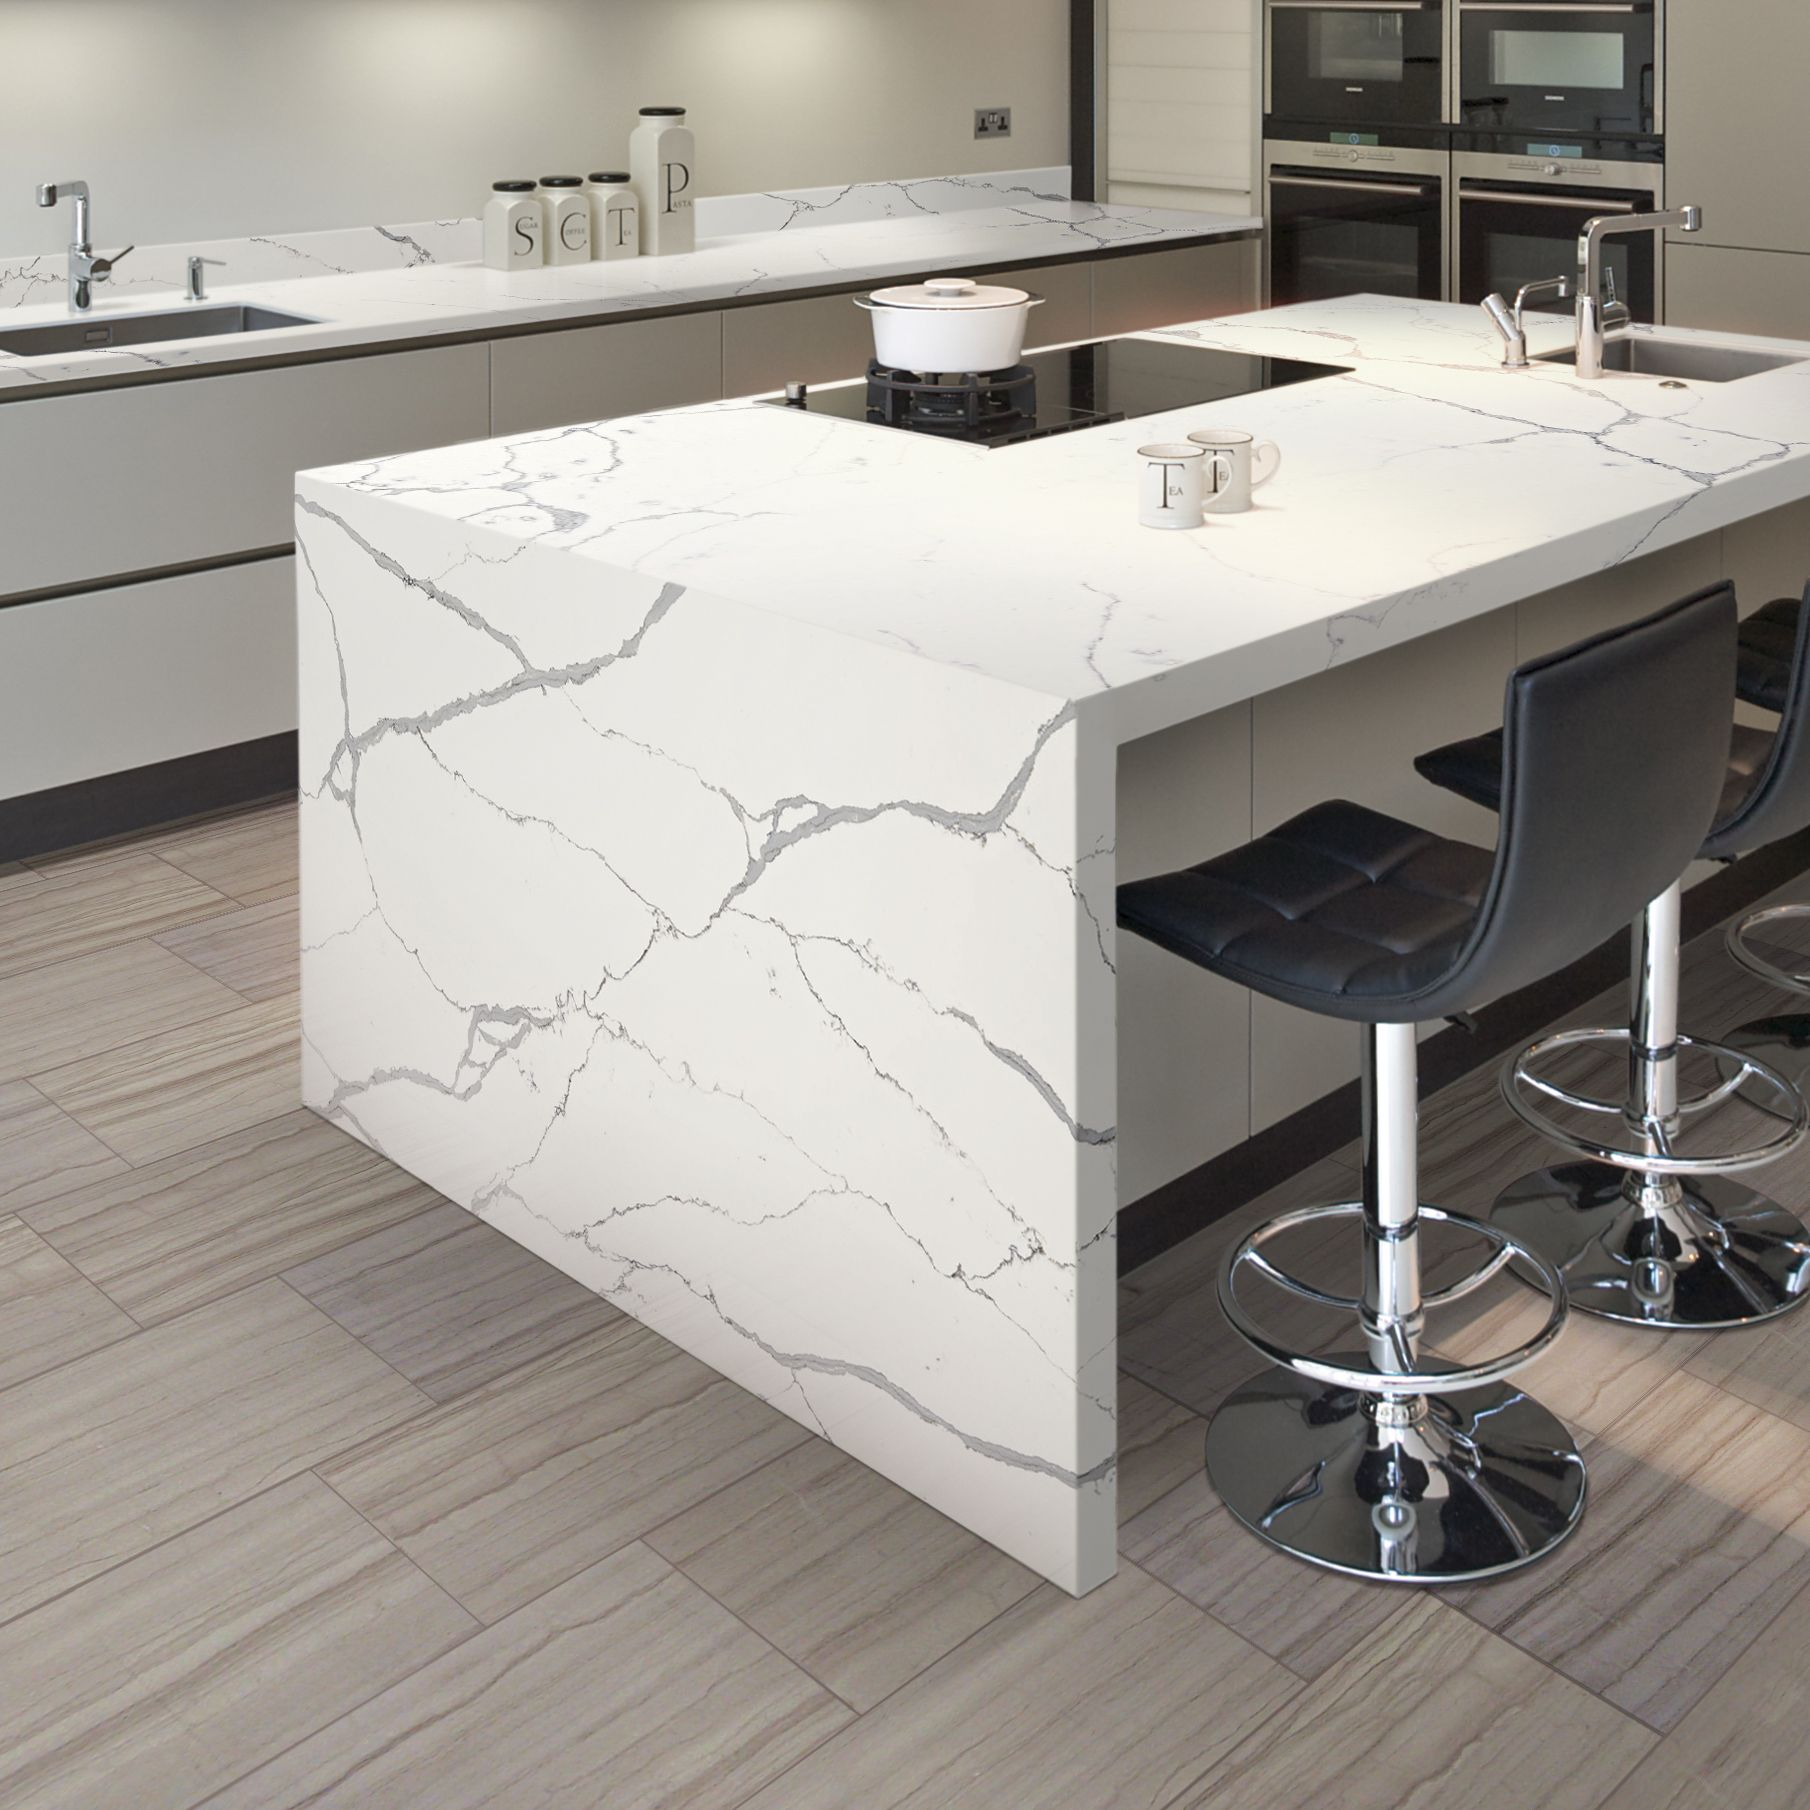 Photo features ONE Quartz Surfaces in Statuary Quartz on the counter and  Daltile Marble in Silver